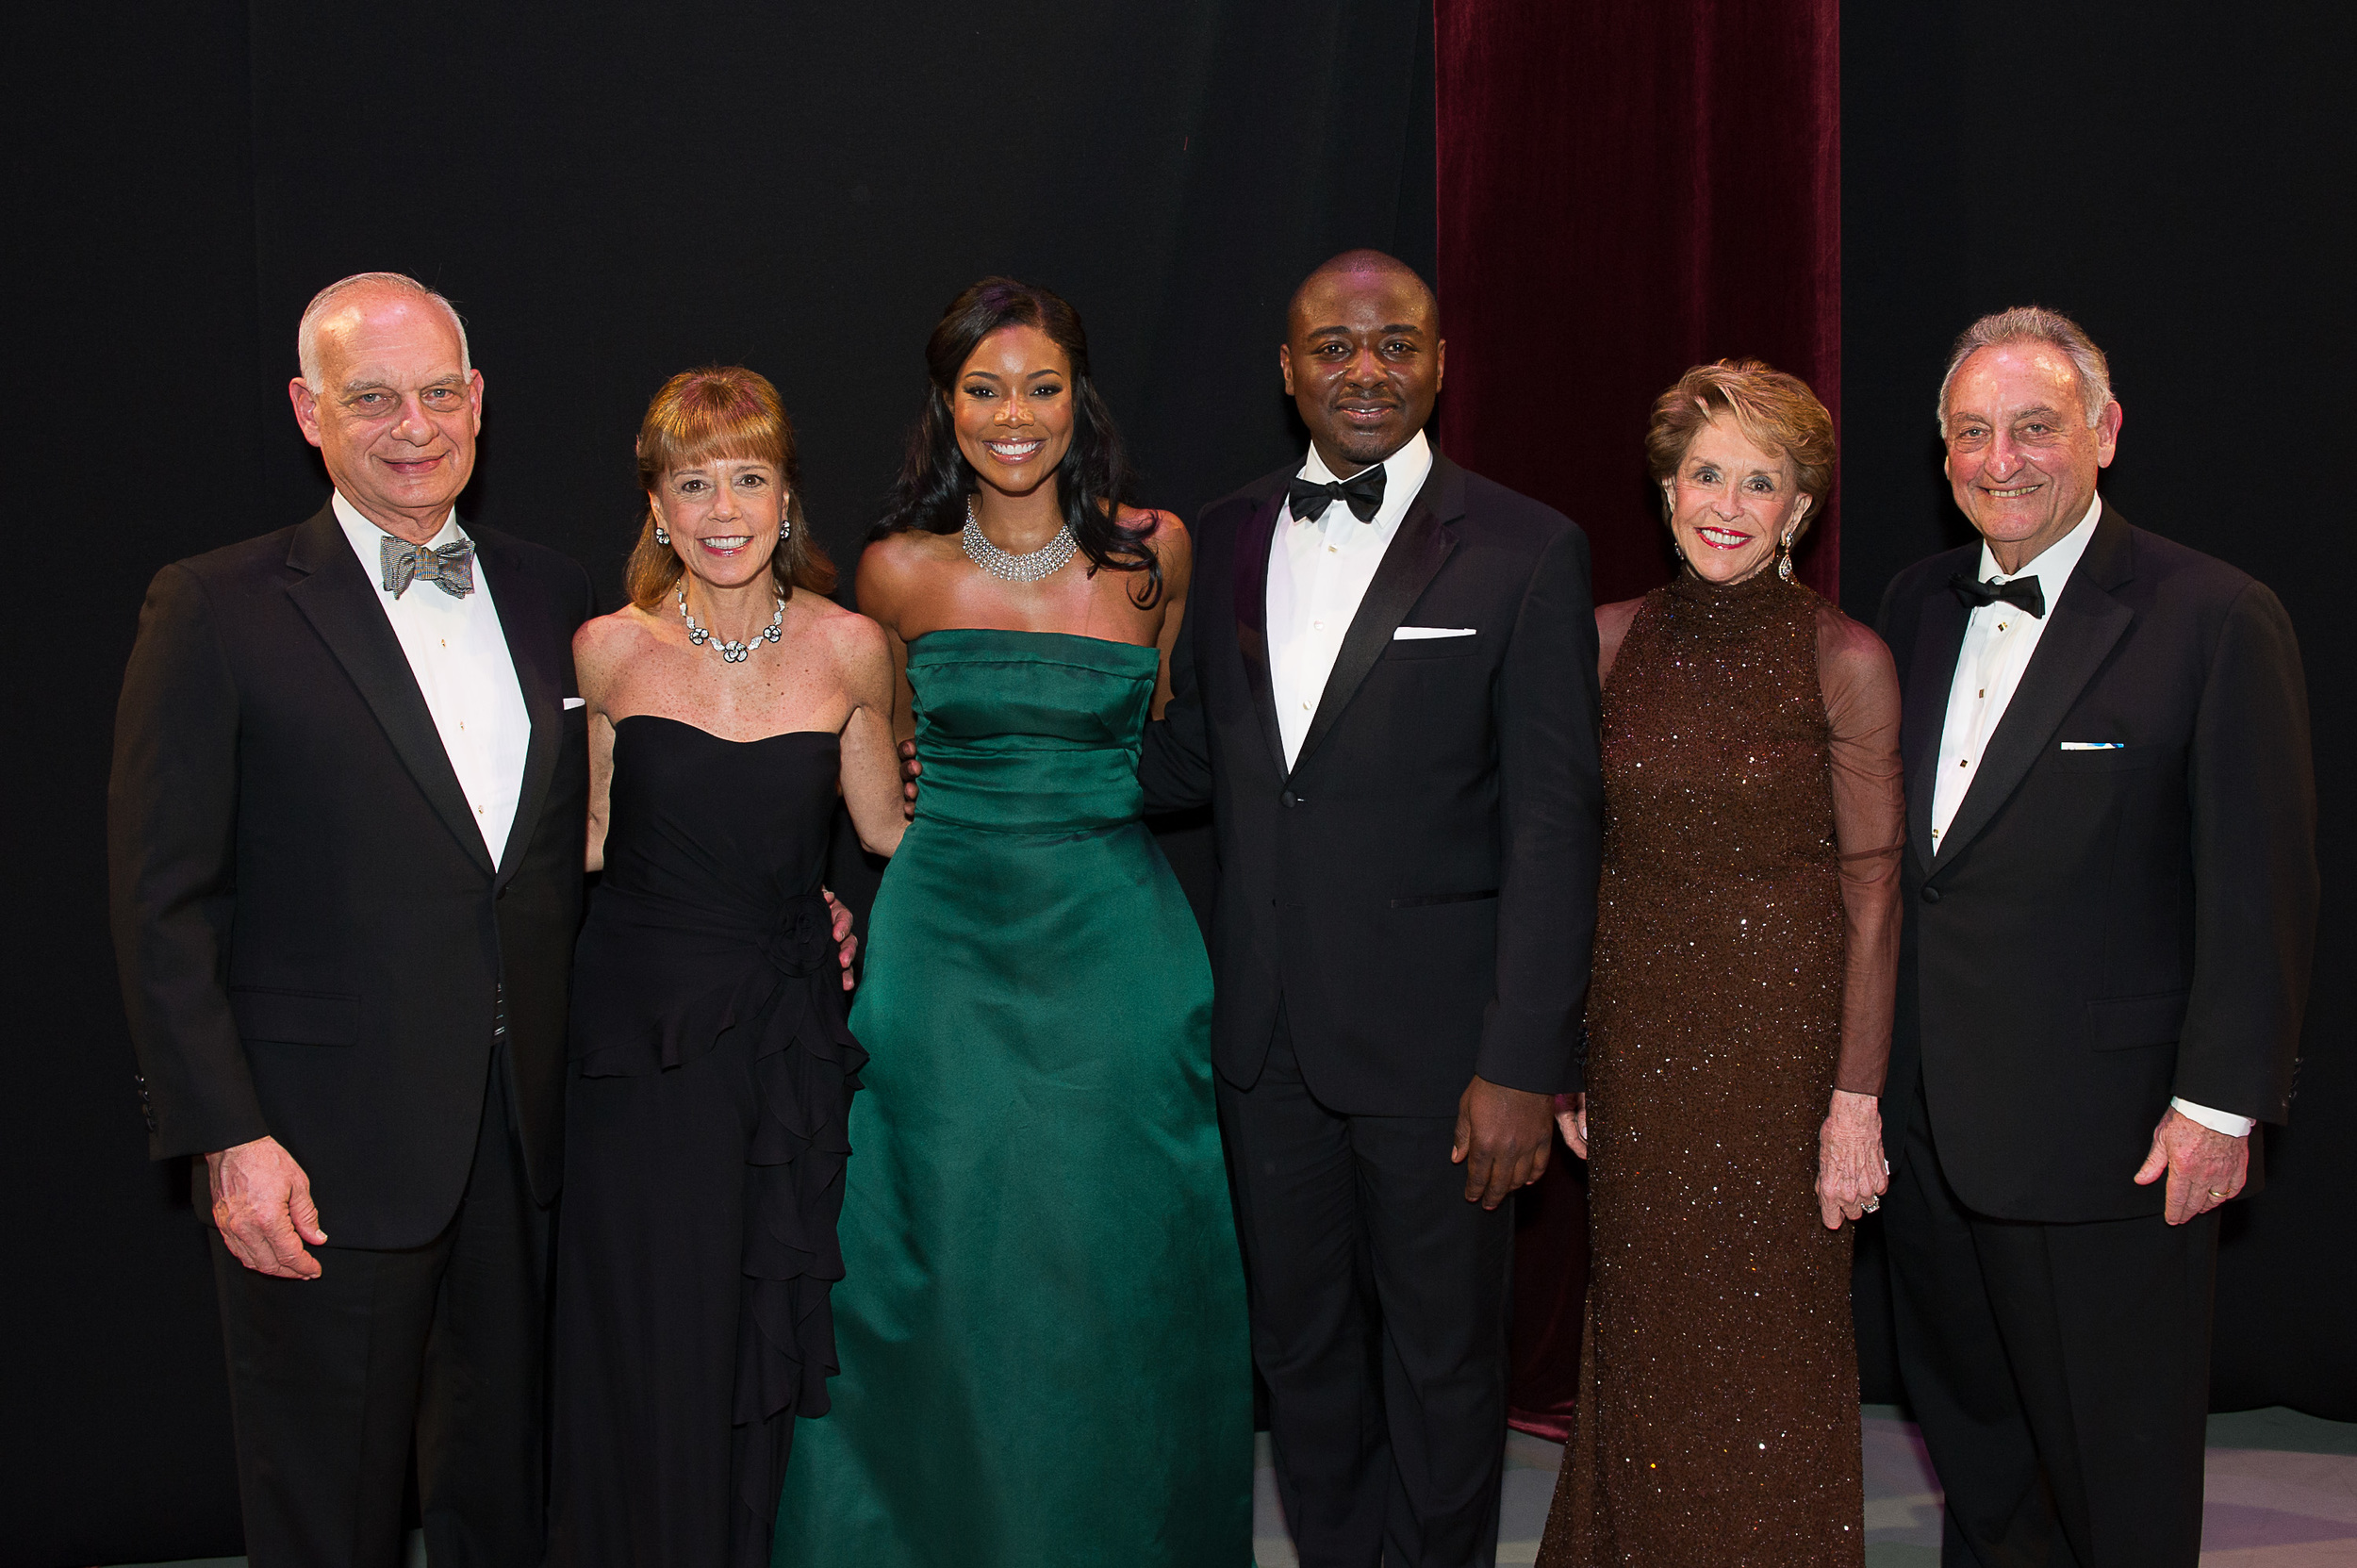 Eric J. and Daria L. Wallach, Actress and Honorary Chair Gabrielle Union, Artistic Director Robert Battle, and Joan and Sanford Weill. Photo Credit by Christoper Duggan